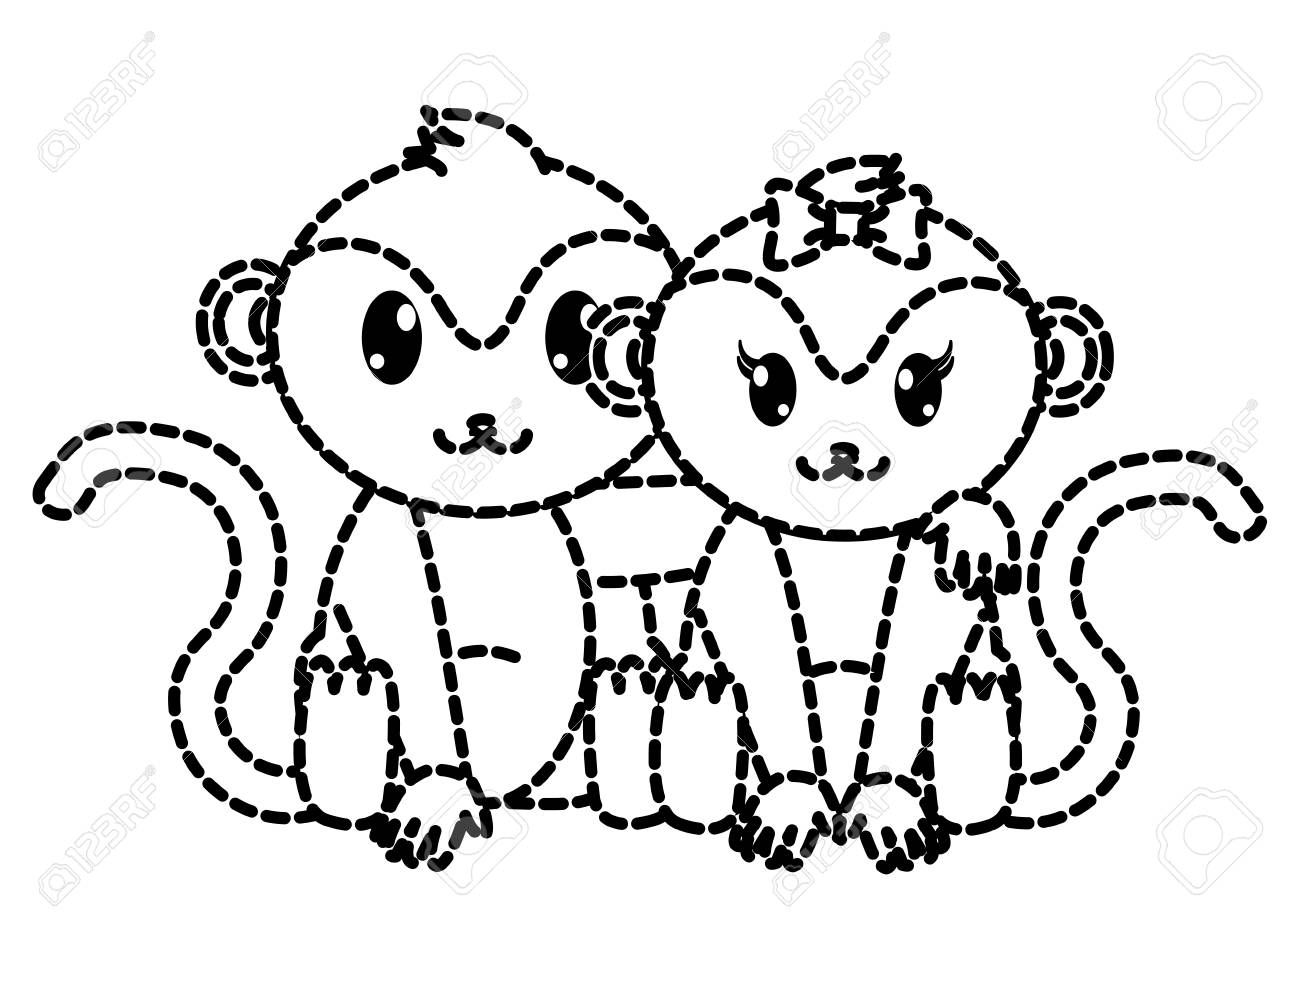 dotted shape monkey couple cute animal together vector illustration stock vector 95410407